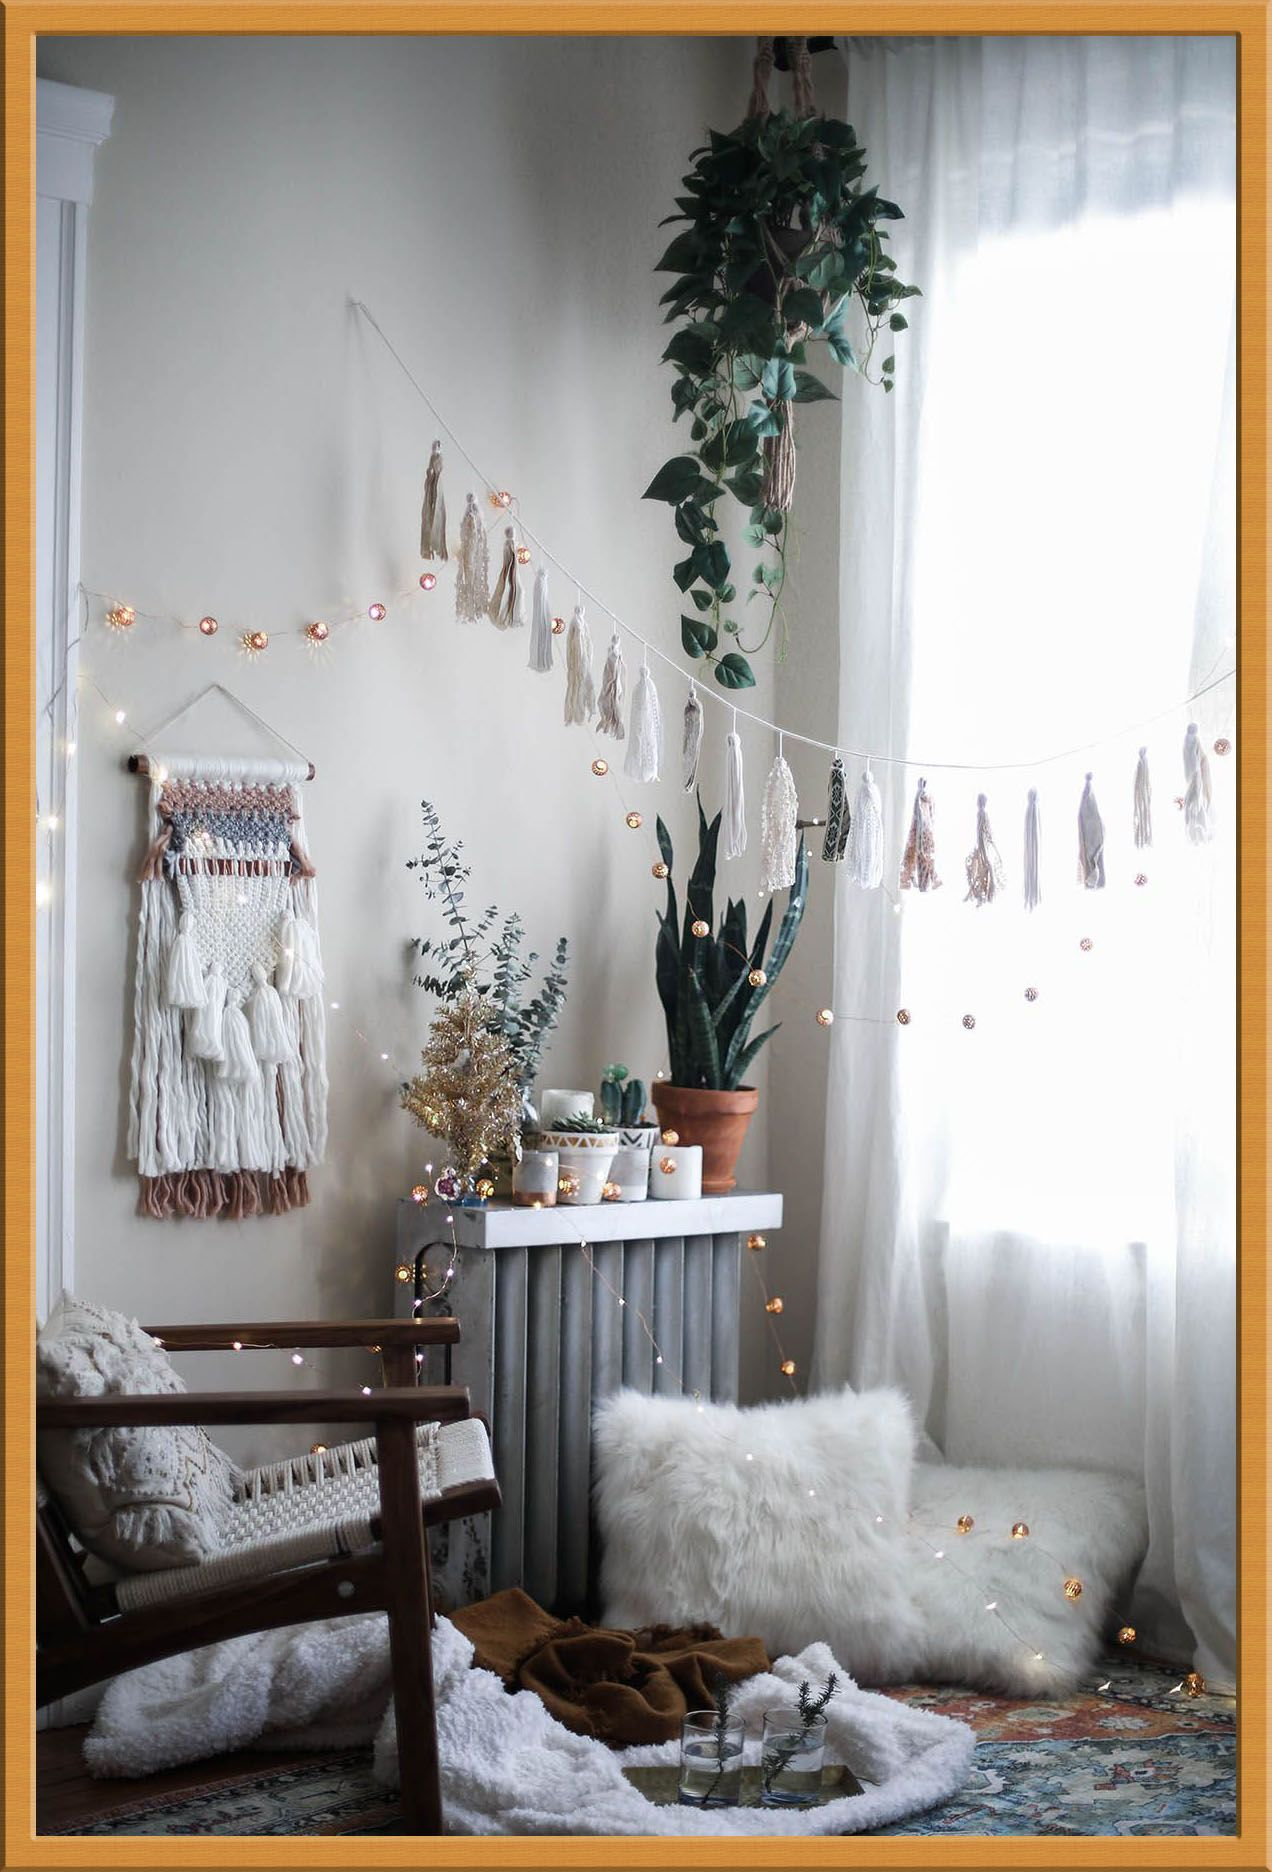 Clear And Unbiased Facts About Bohemian Homedecor (Without All the Hype)